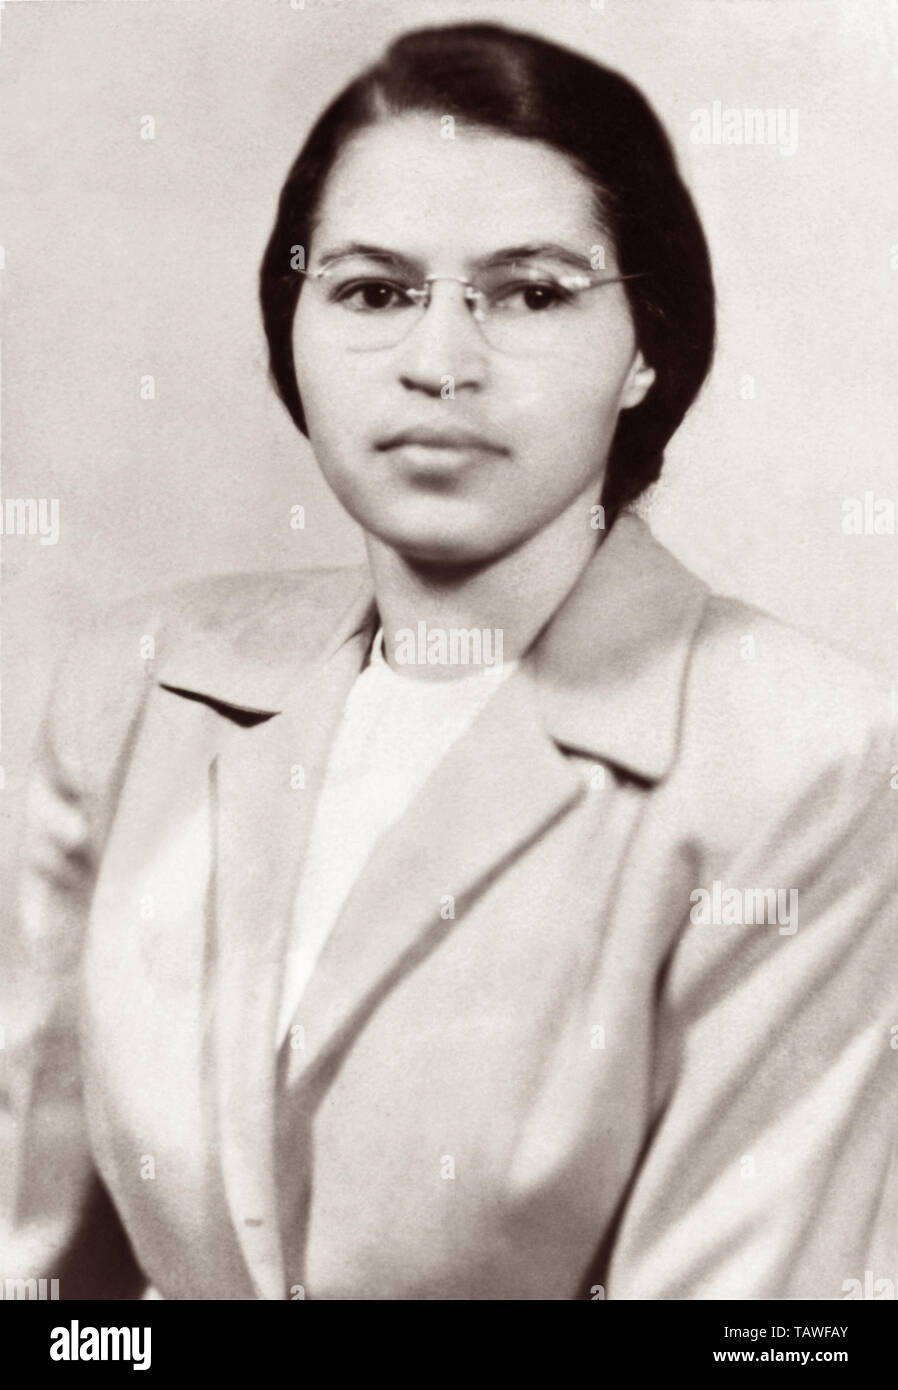 hight resolution of rosa parks c1950 stock image